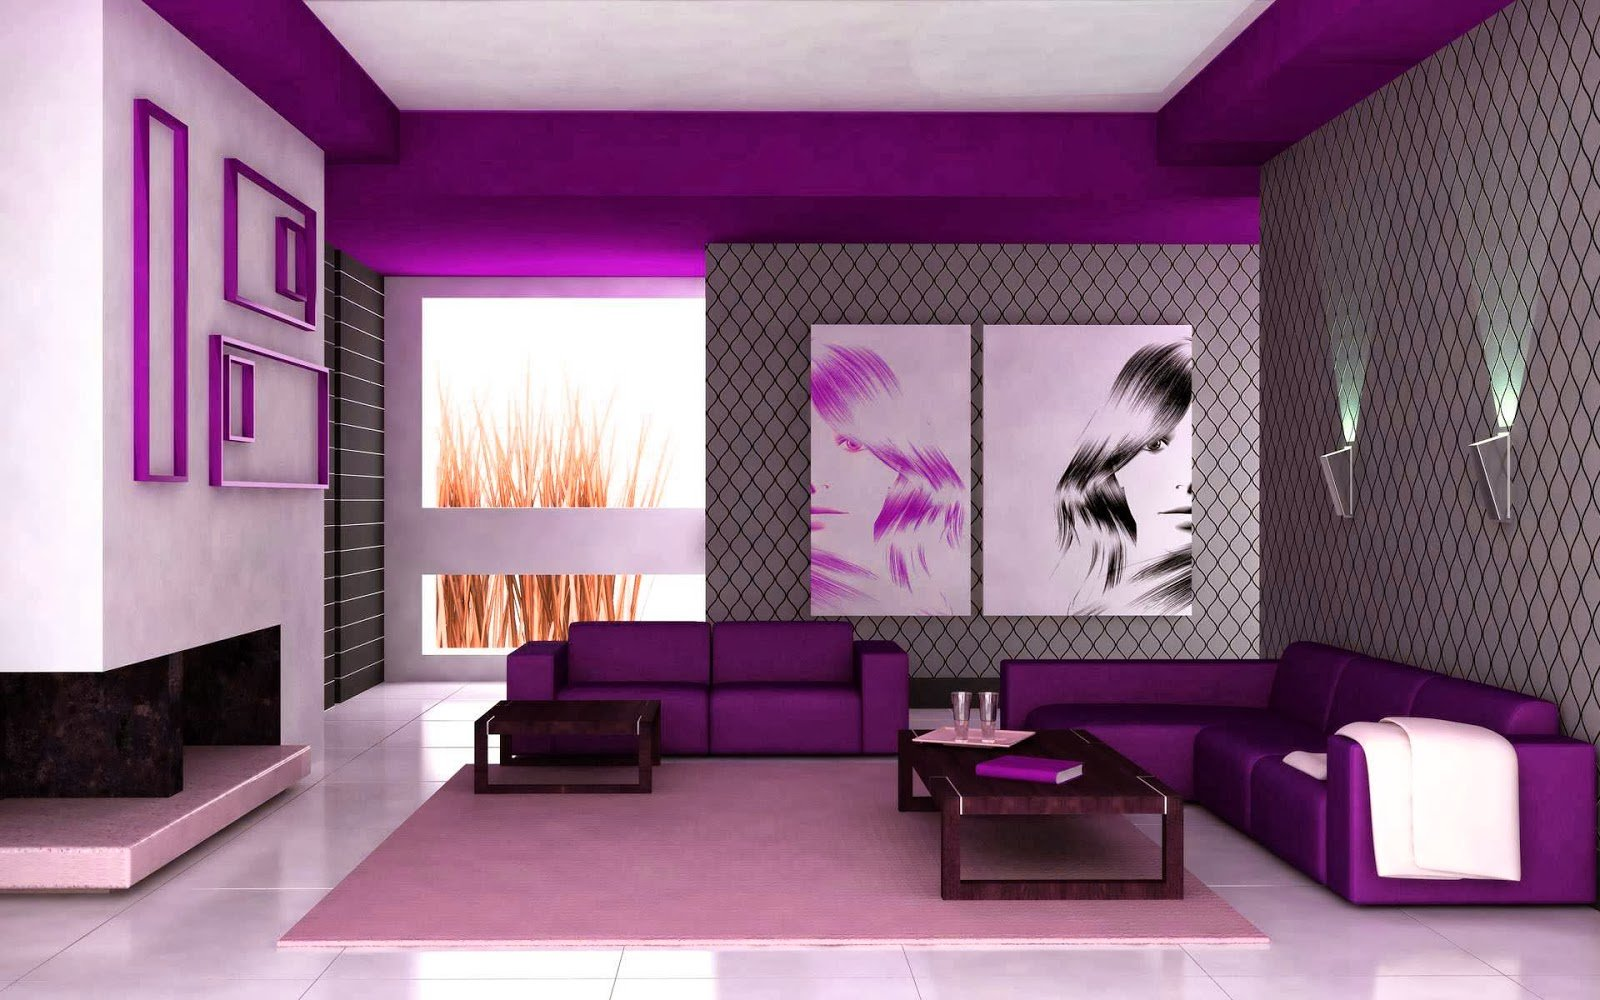 Purple Living Room Ideas - Terrys Fabrics's BlogTerrys Fabrics's Blog